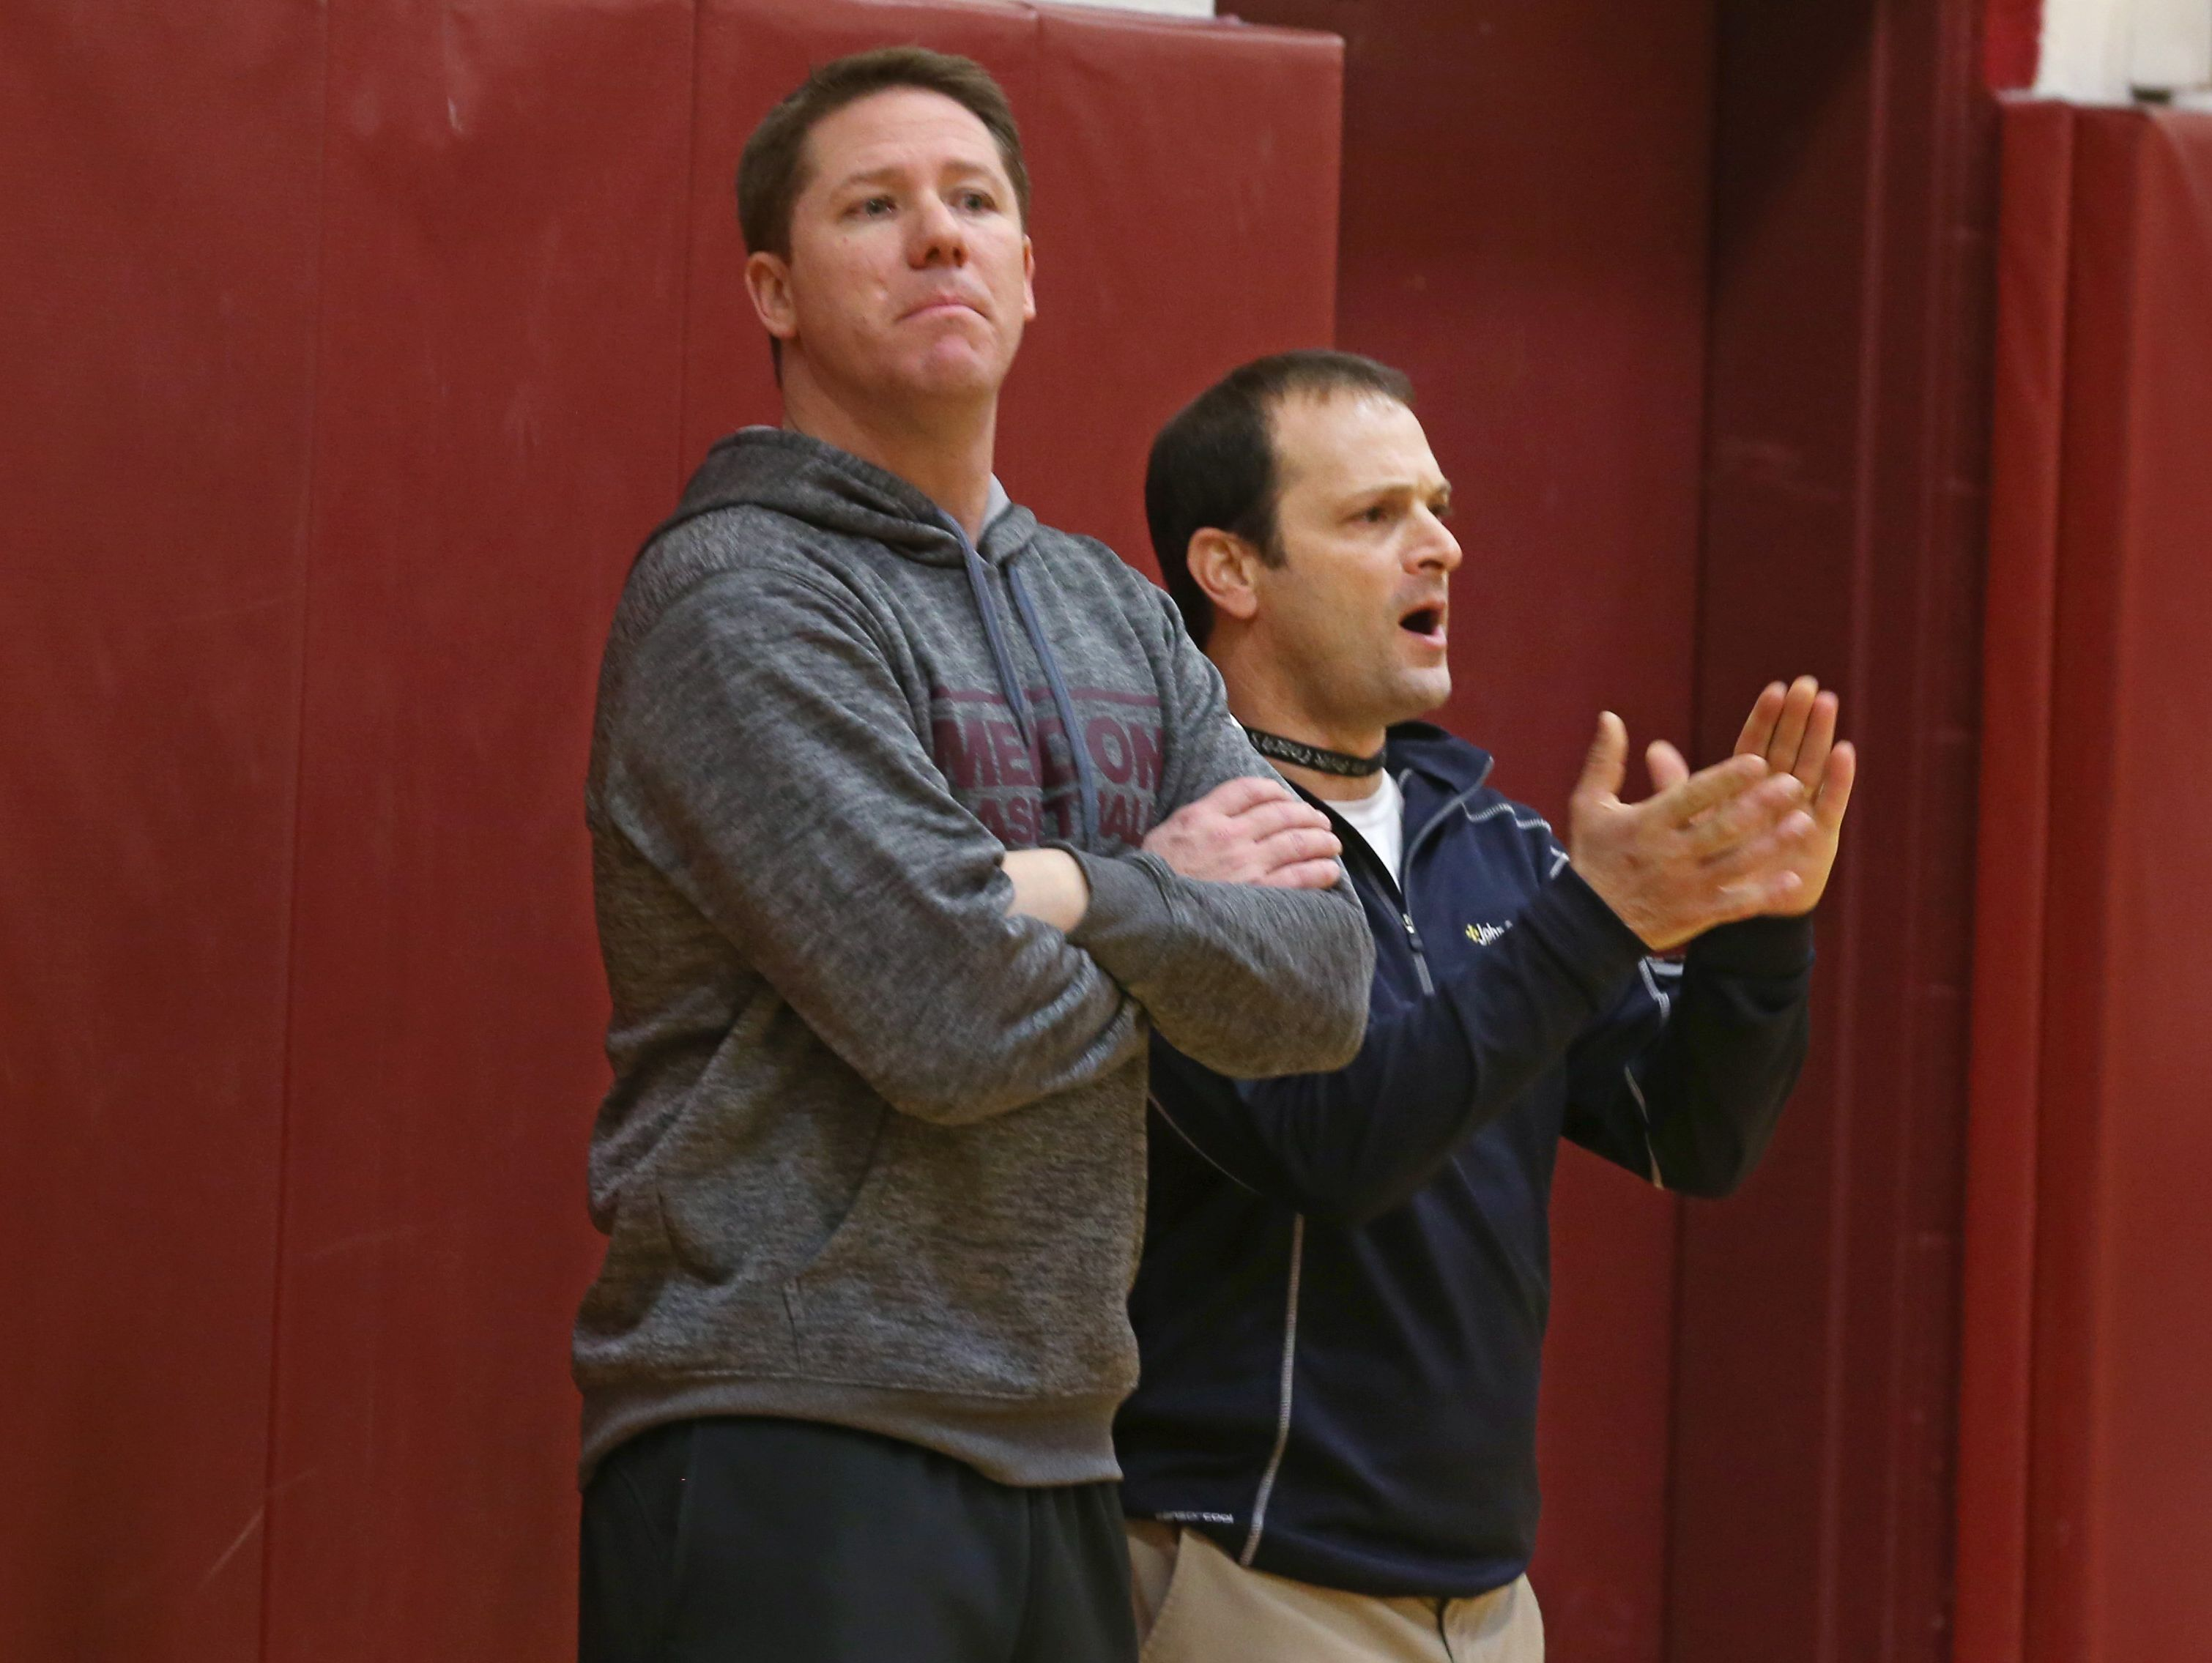 Jeff Amoroso, Pittsford Mendon boys varsity basketball assistant coach, right, works side-by-side with head coach Bob Nally, left, during practice Tuesday, Jan. 19, 2016 at the high school.